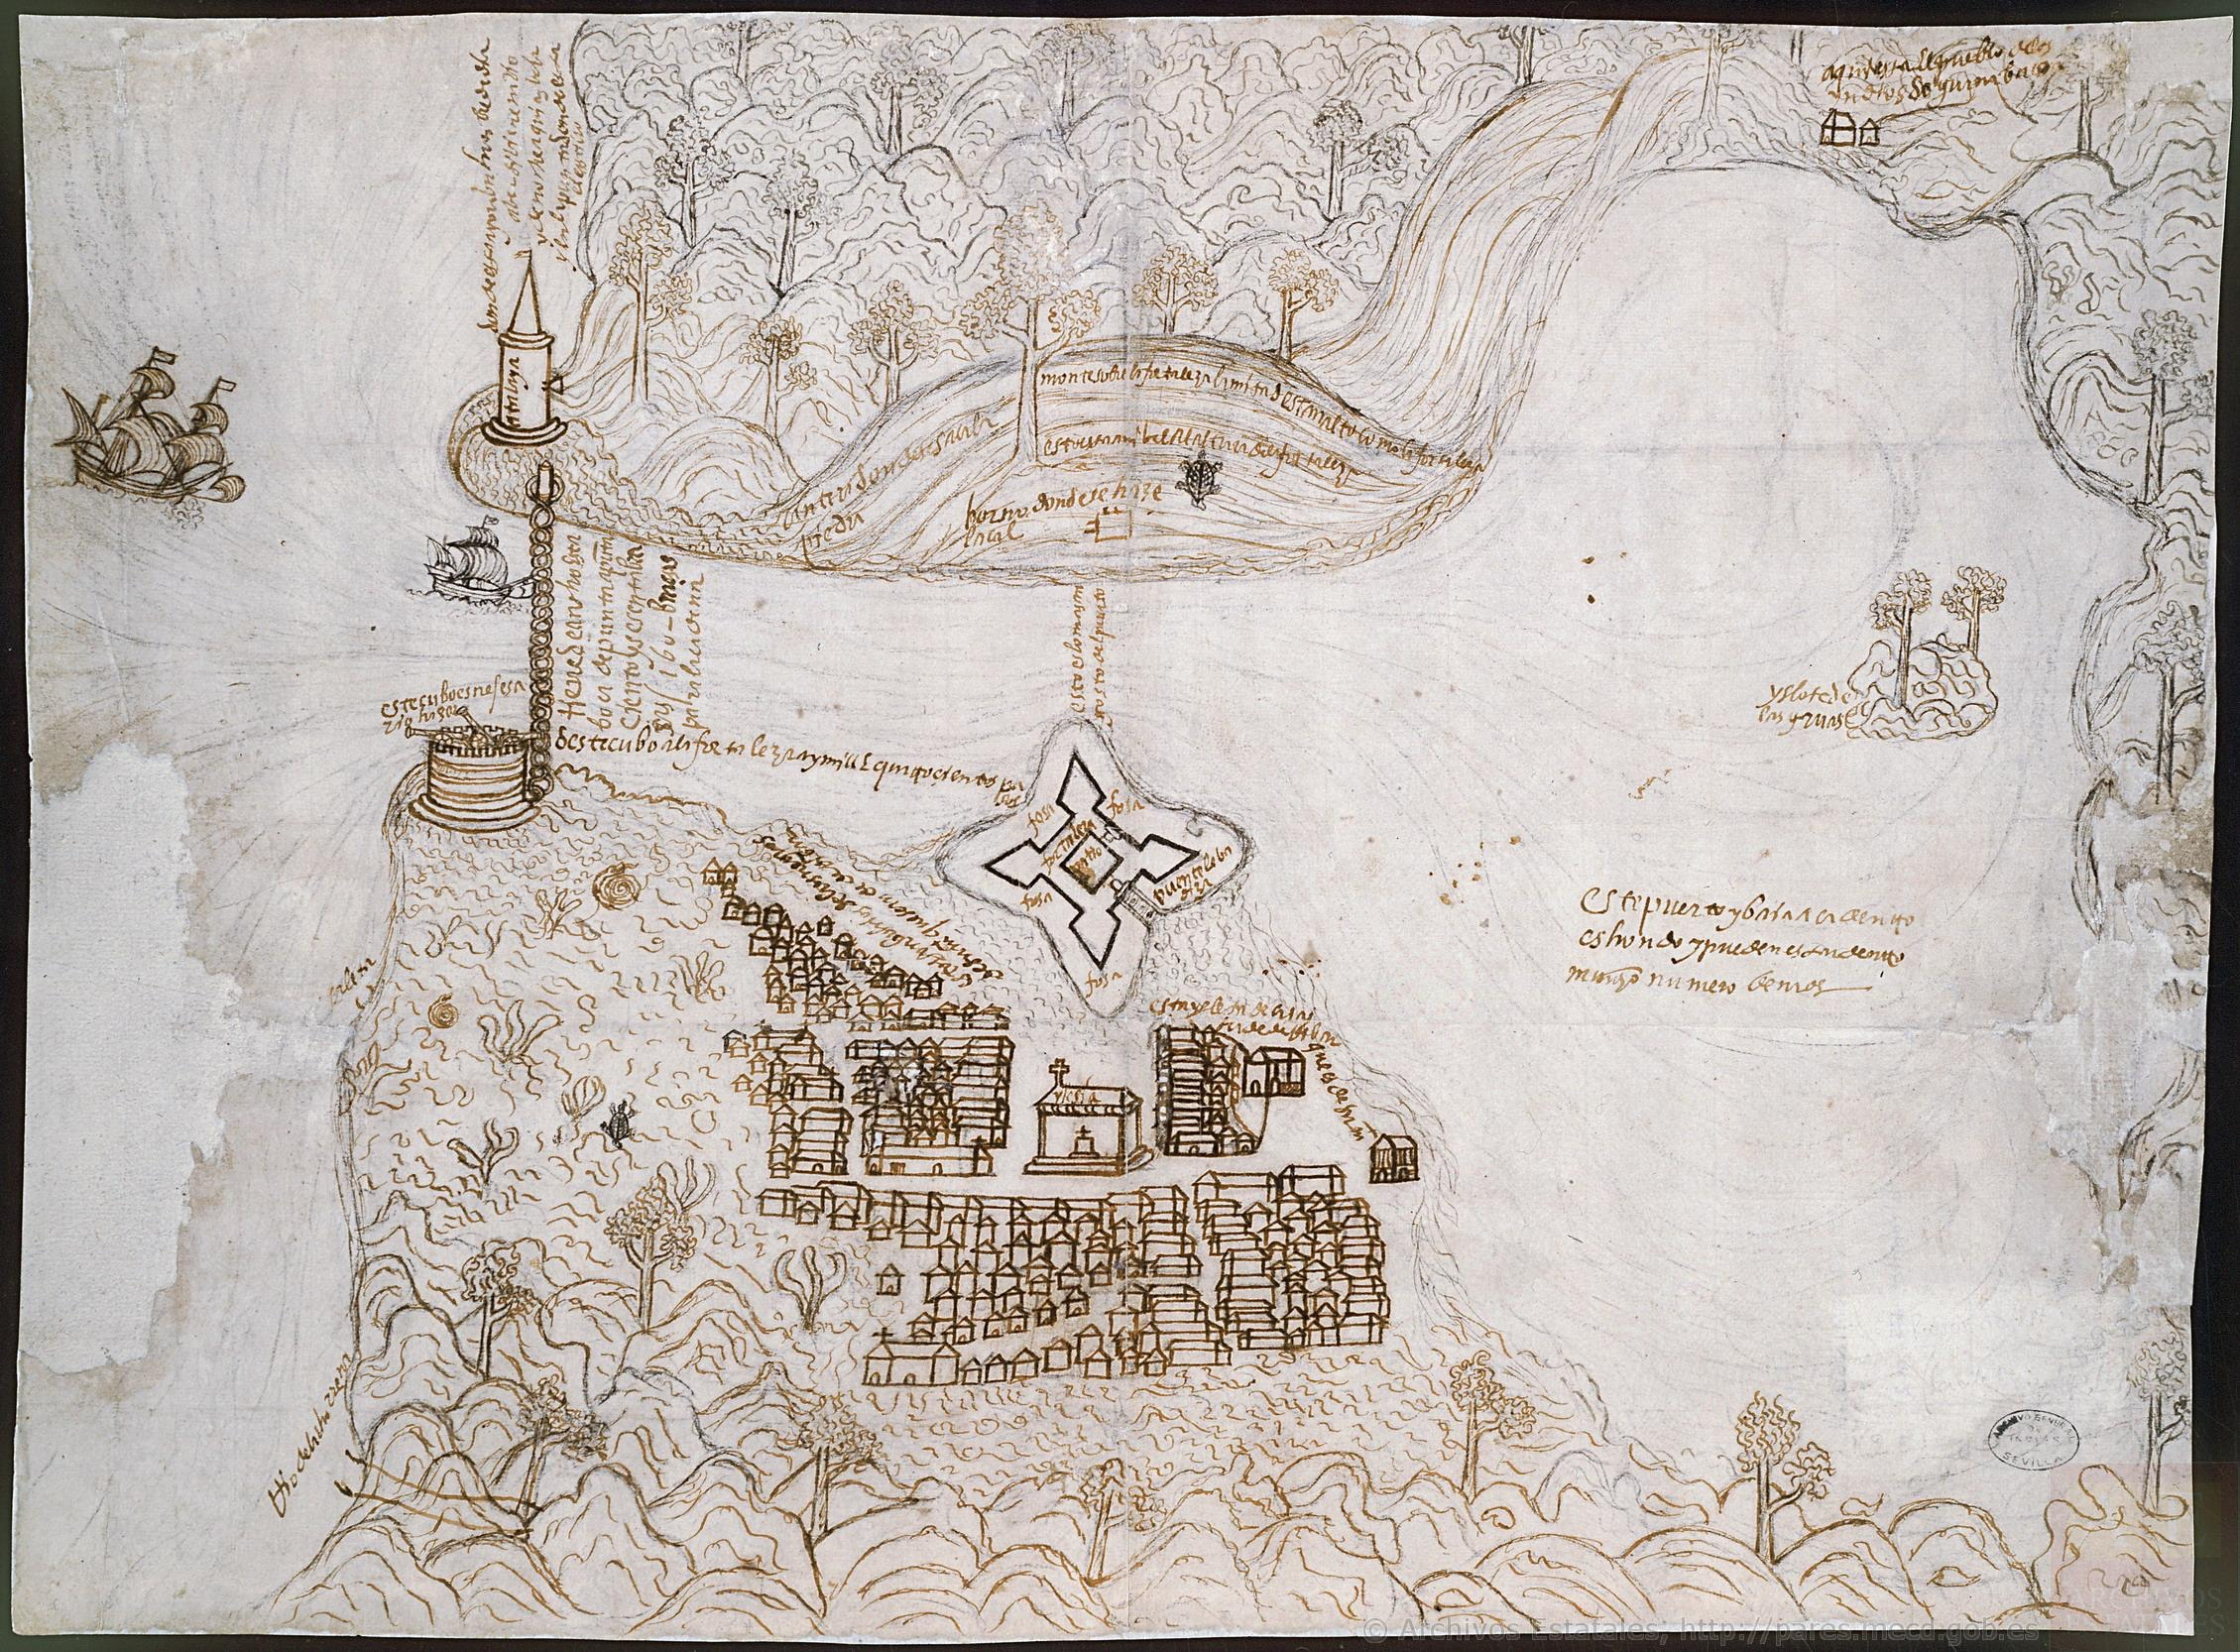 Archivo General de Indias, MP-SANTO_DOMINGO,4. A 1567 map of Havana used in my first article.